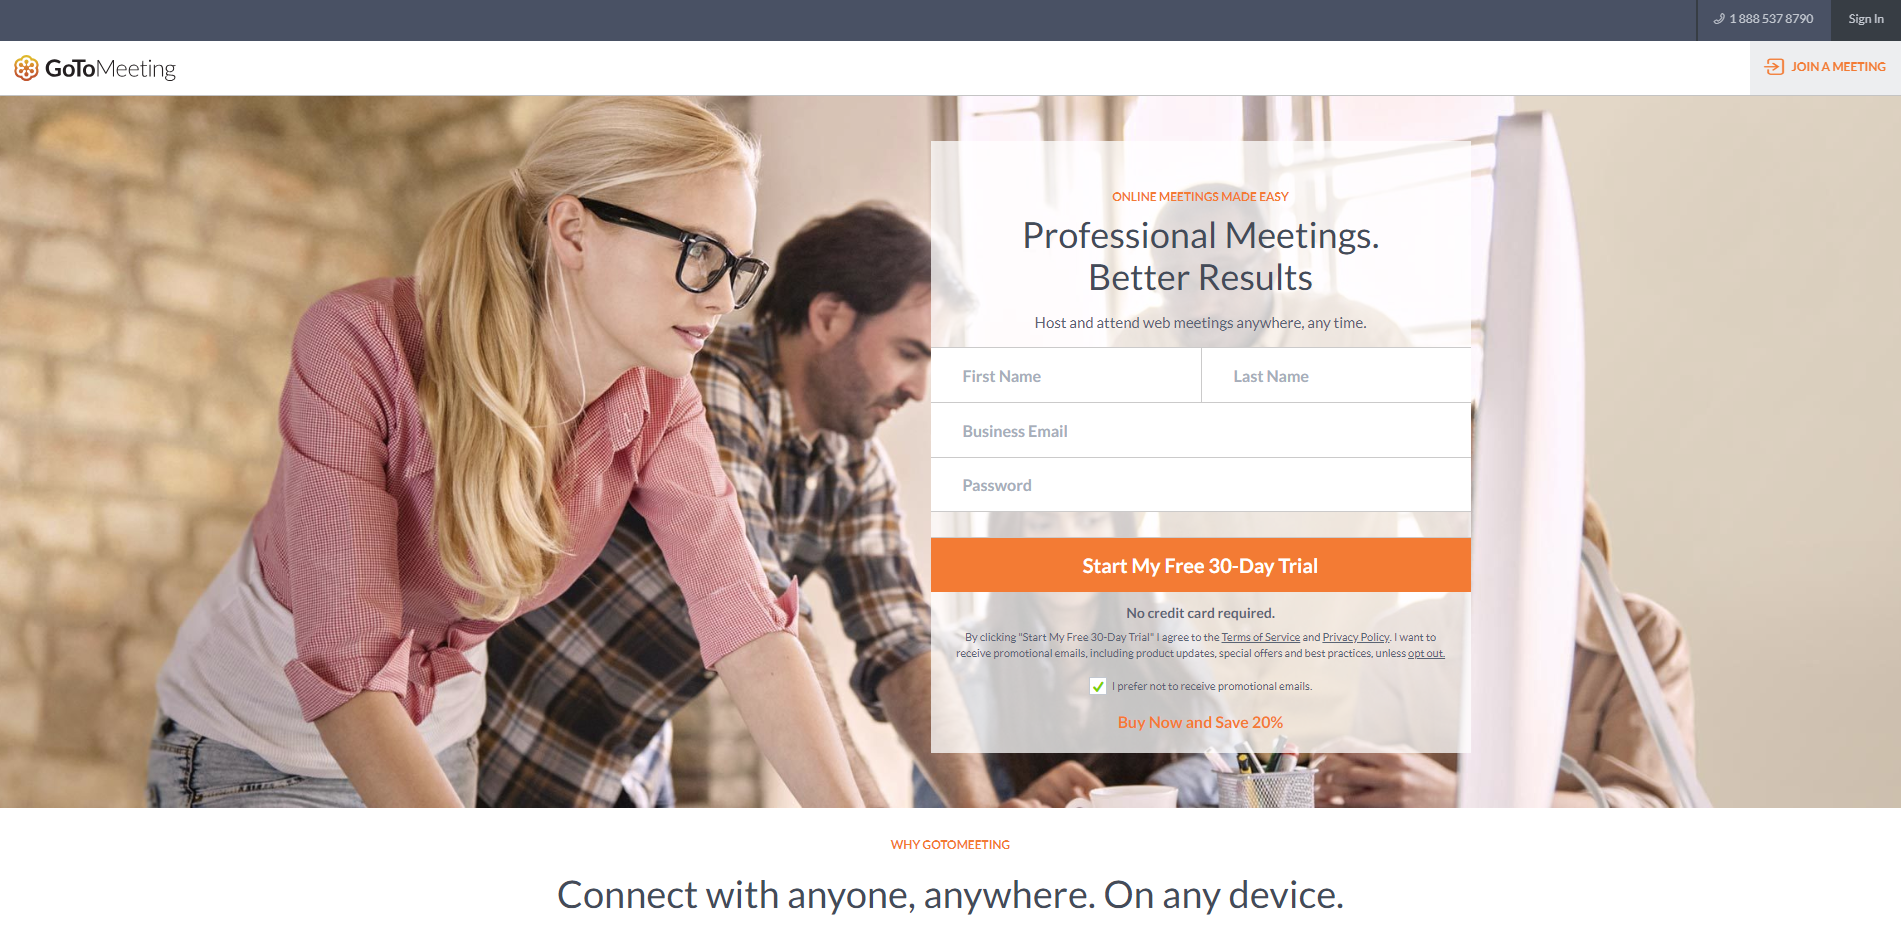 GoToMeeting lets you attend online meetings